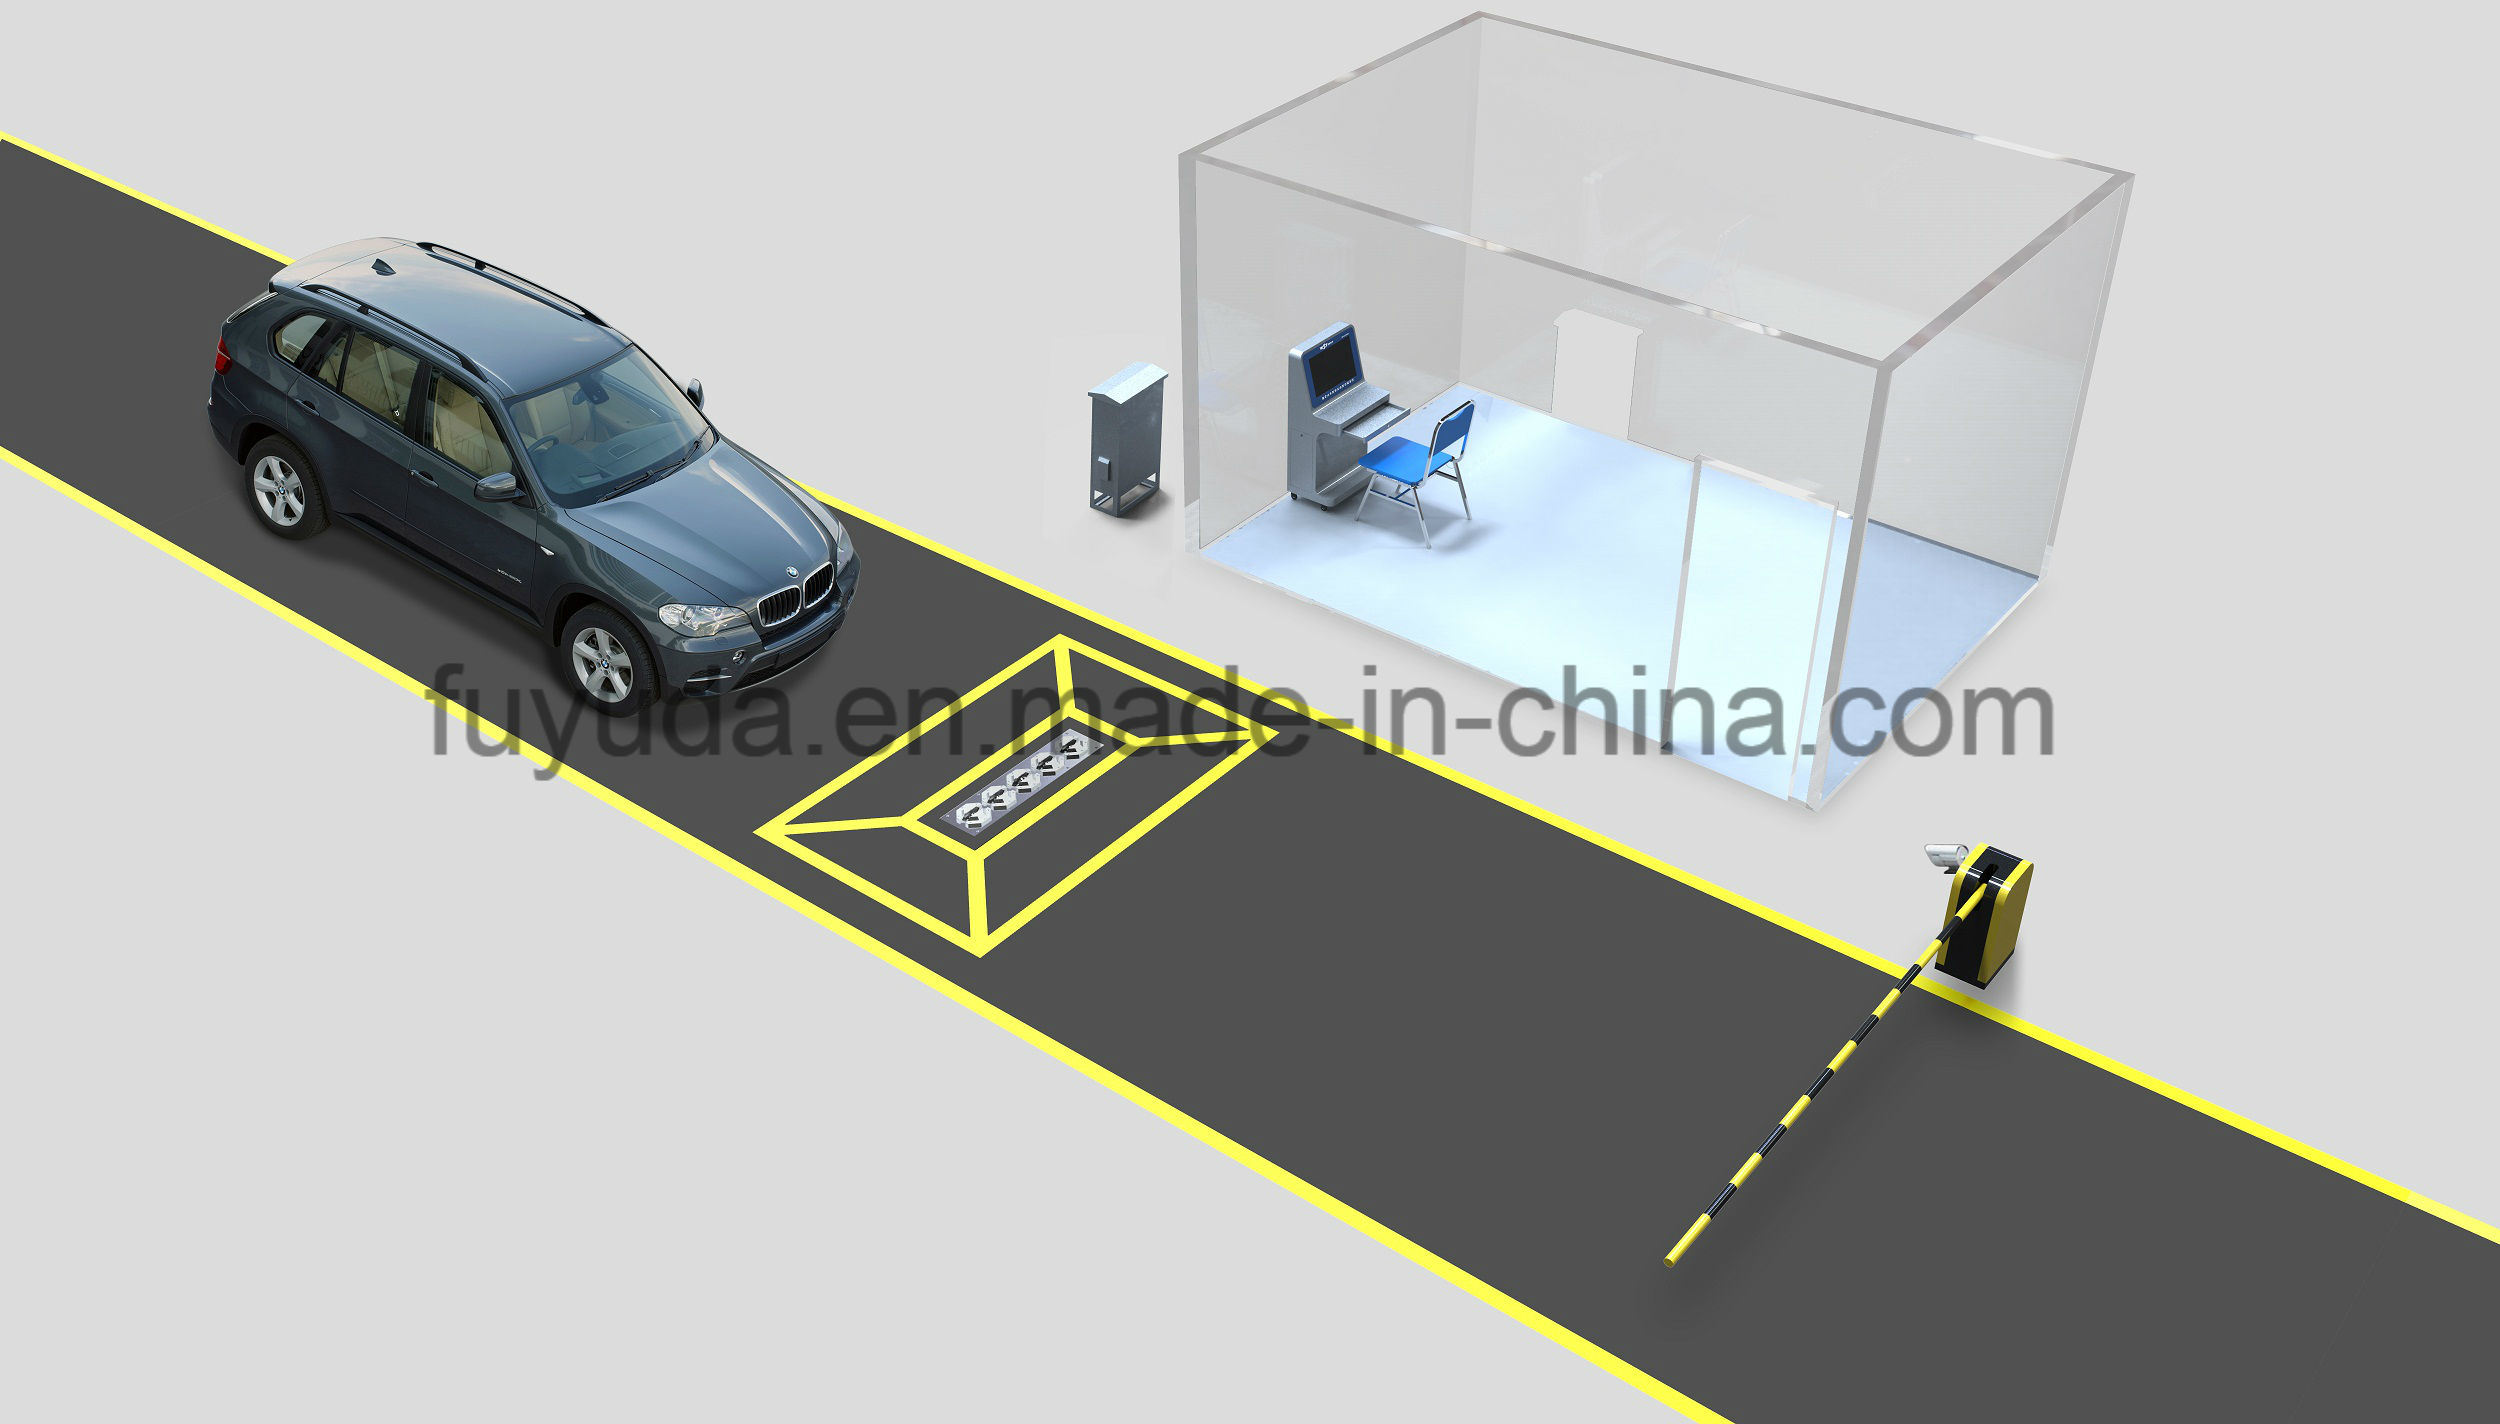 Fixed Waterproof IP67 Under Vehicle Video Surveillance System with High Resolution Scanning Camera